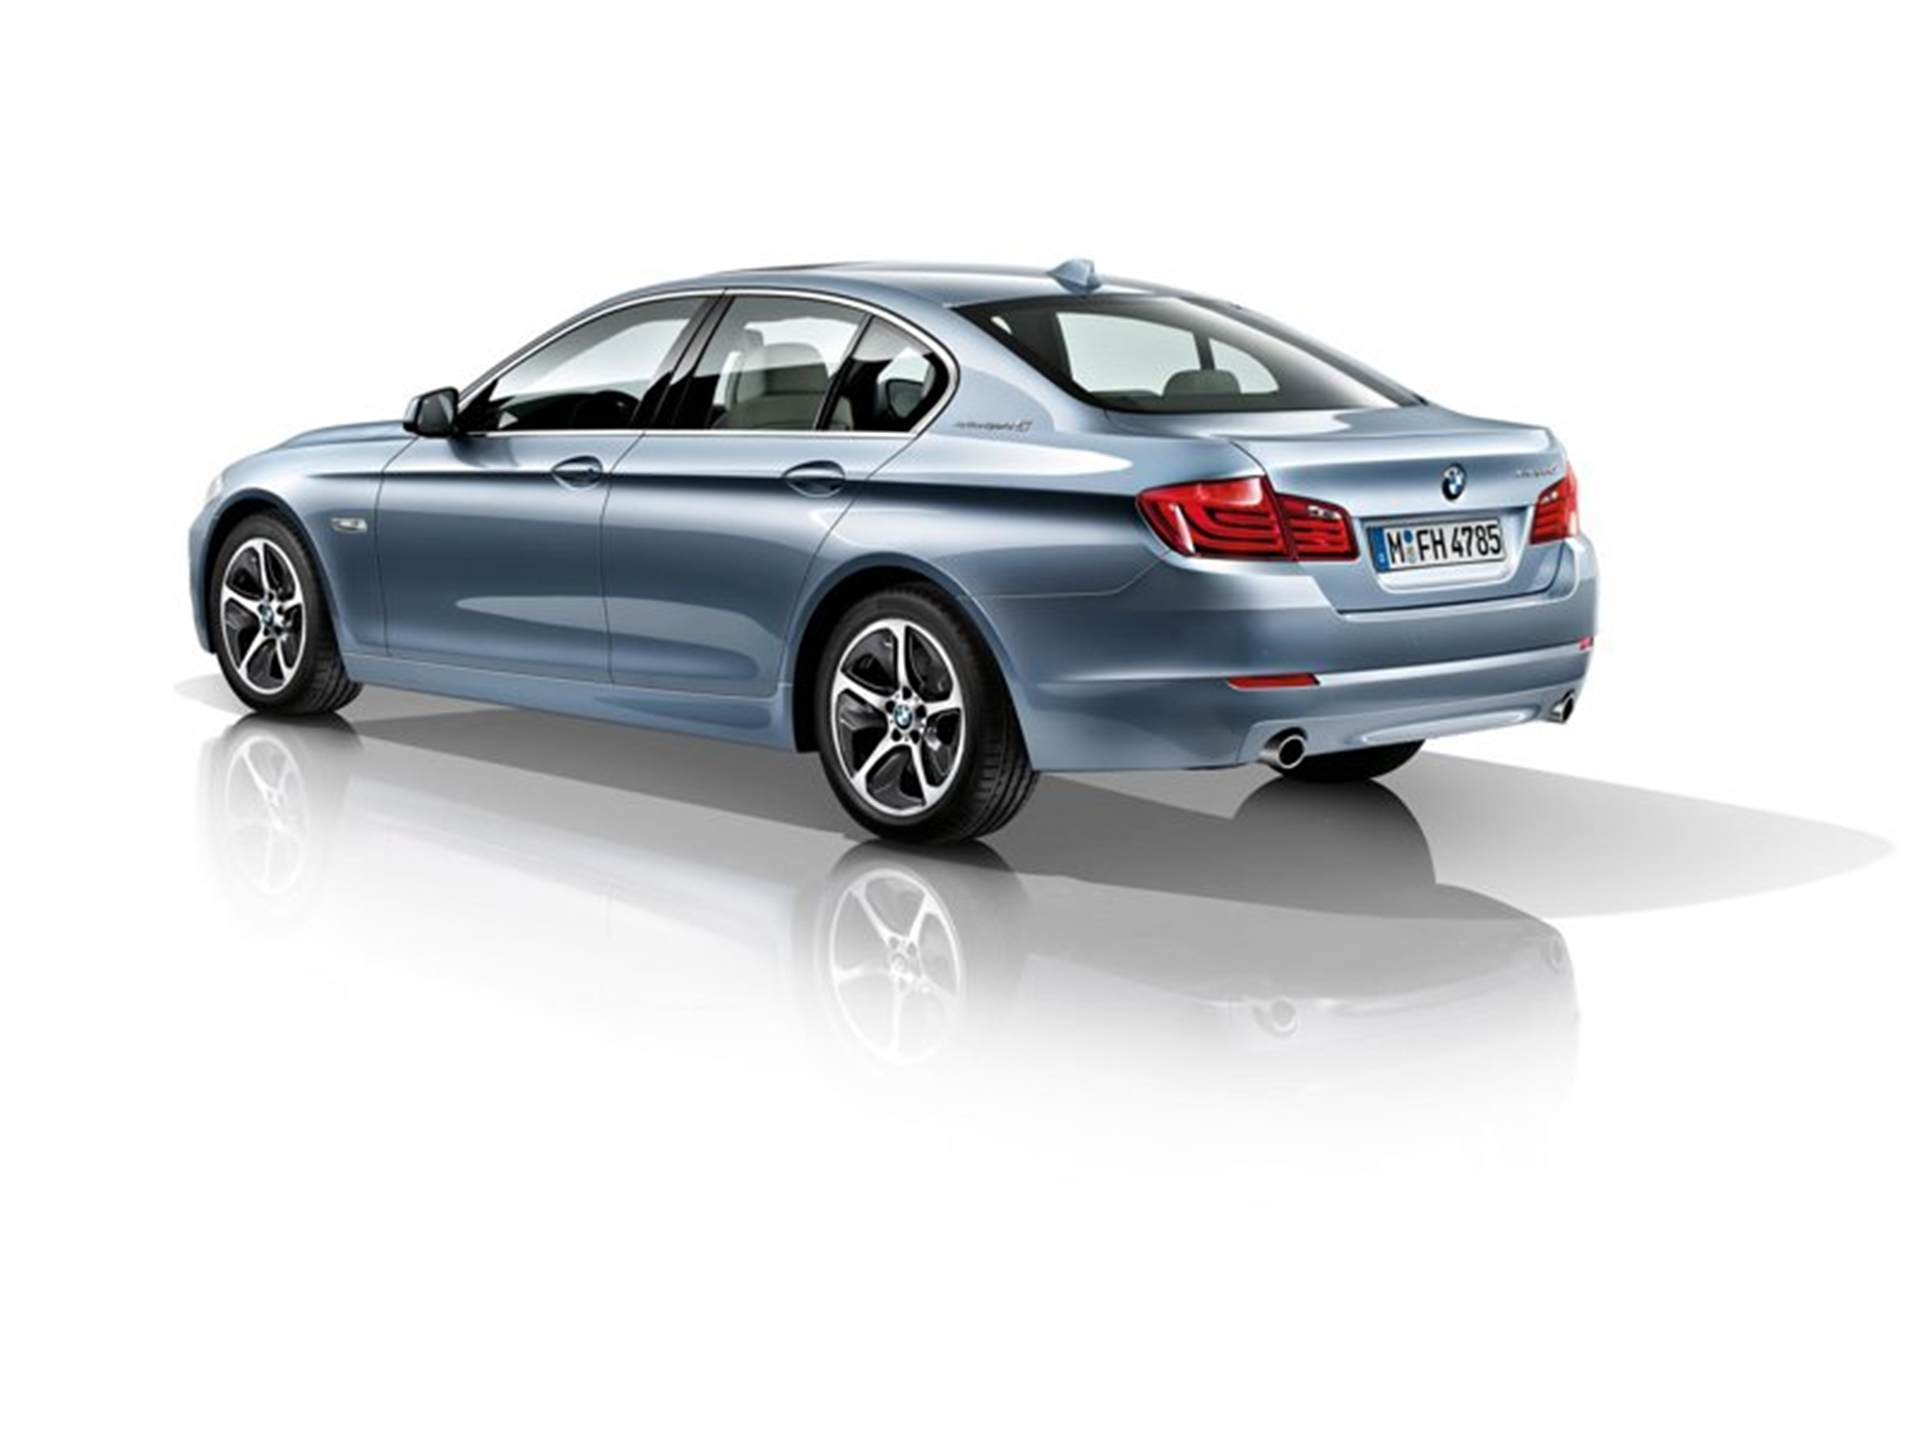 BMW Hybrid Rear View